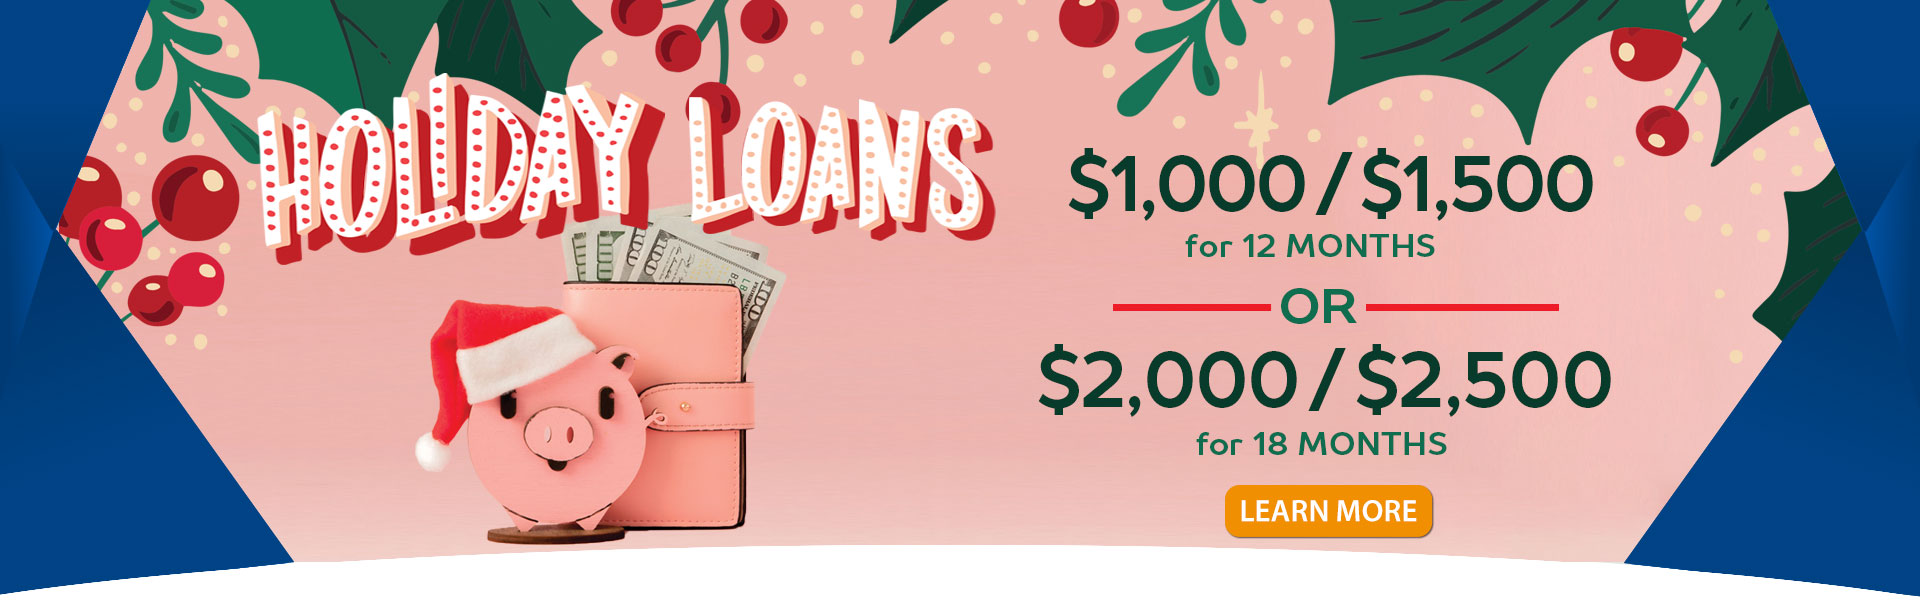 Holiday Loans 2019